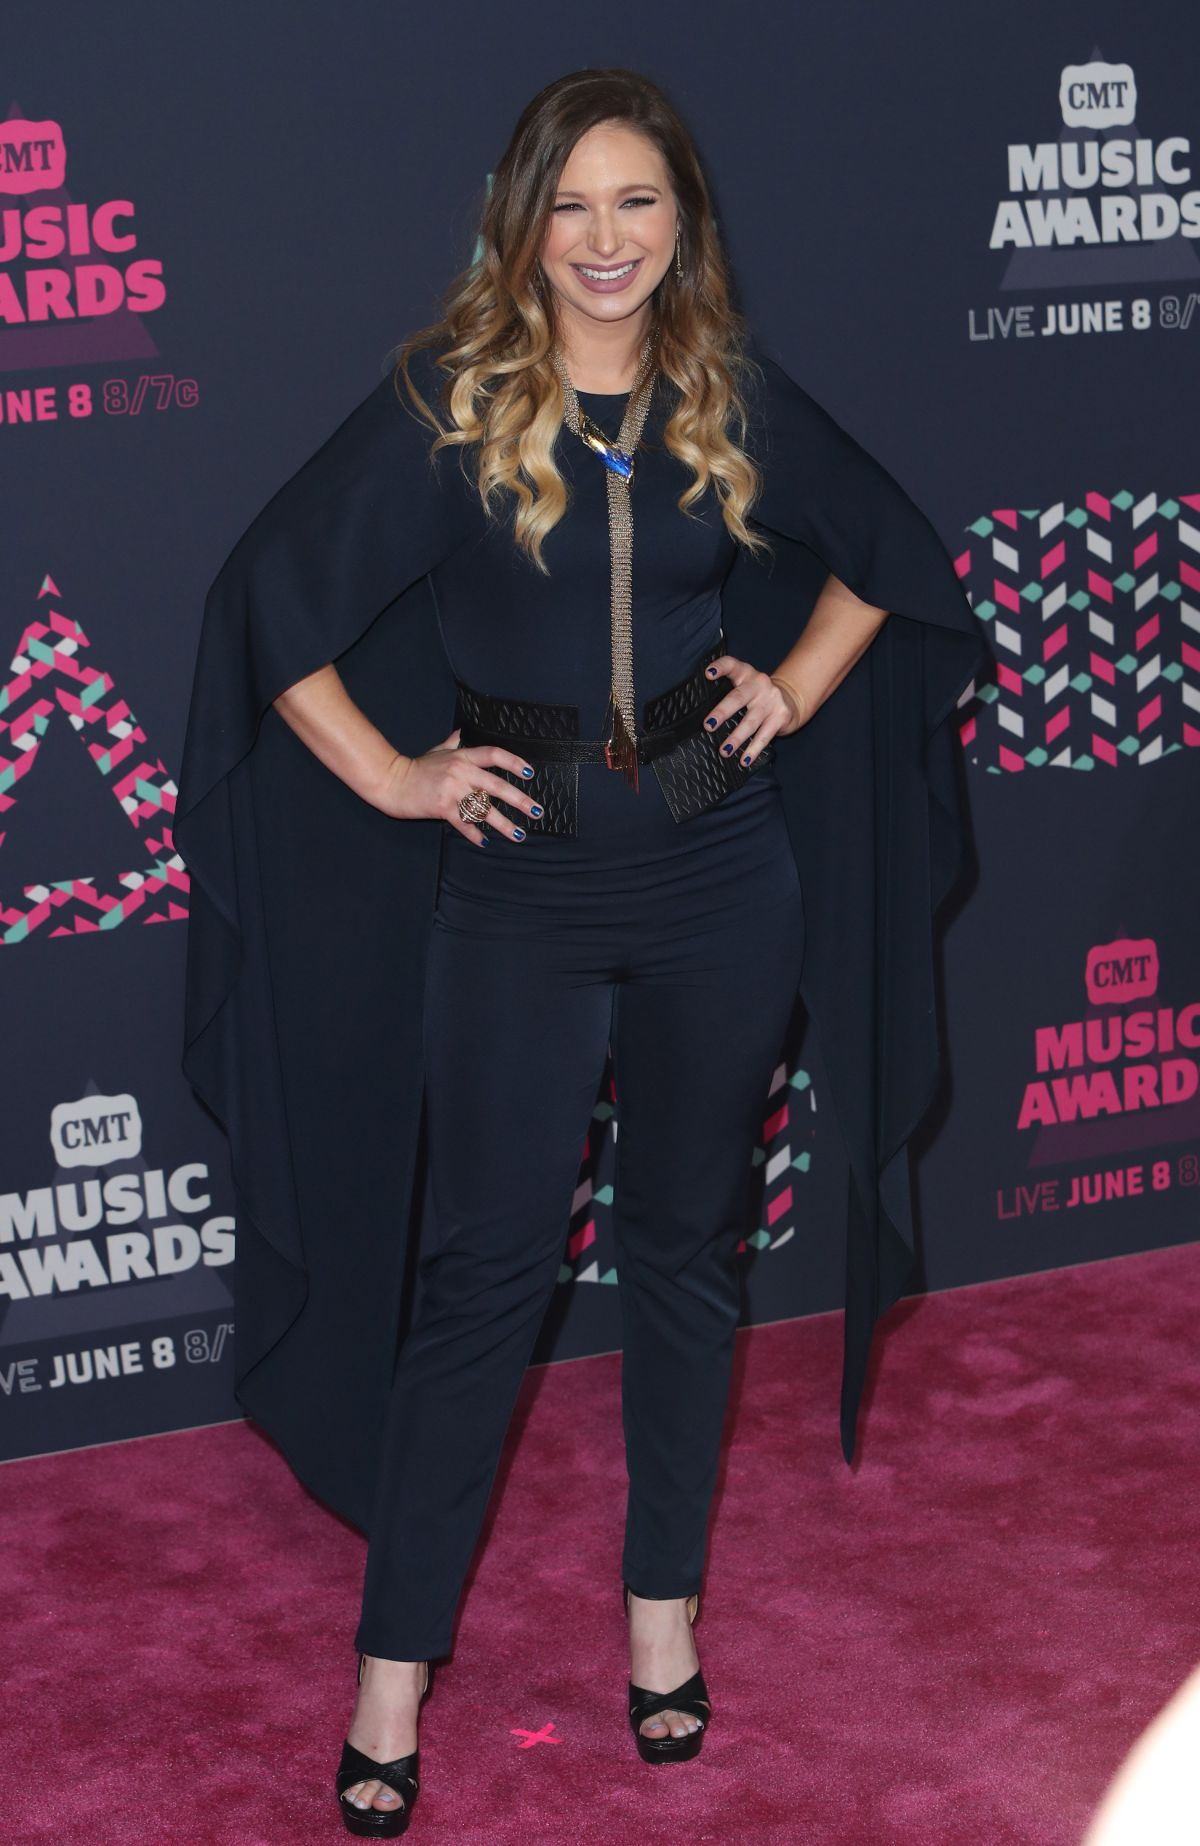 OLIVIA LANE at 2016 CMT Music Awards in Nashville 06/08/2016